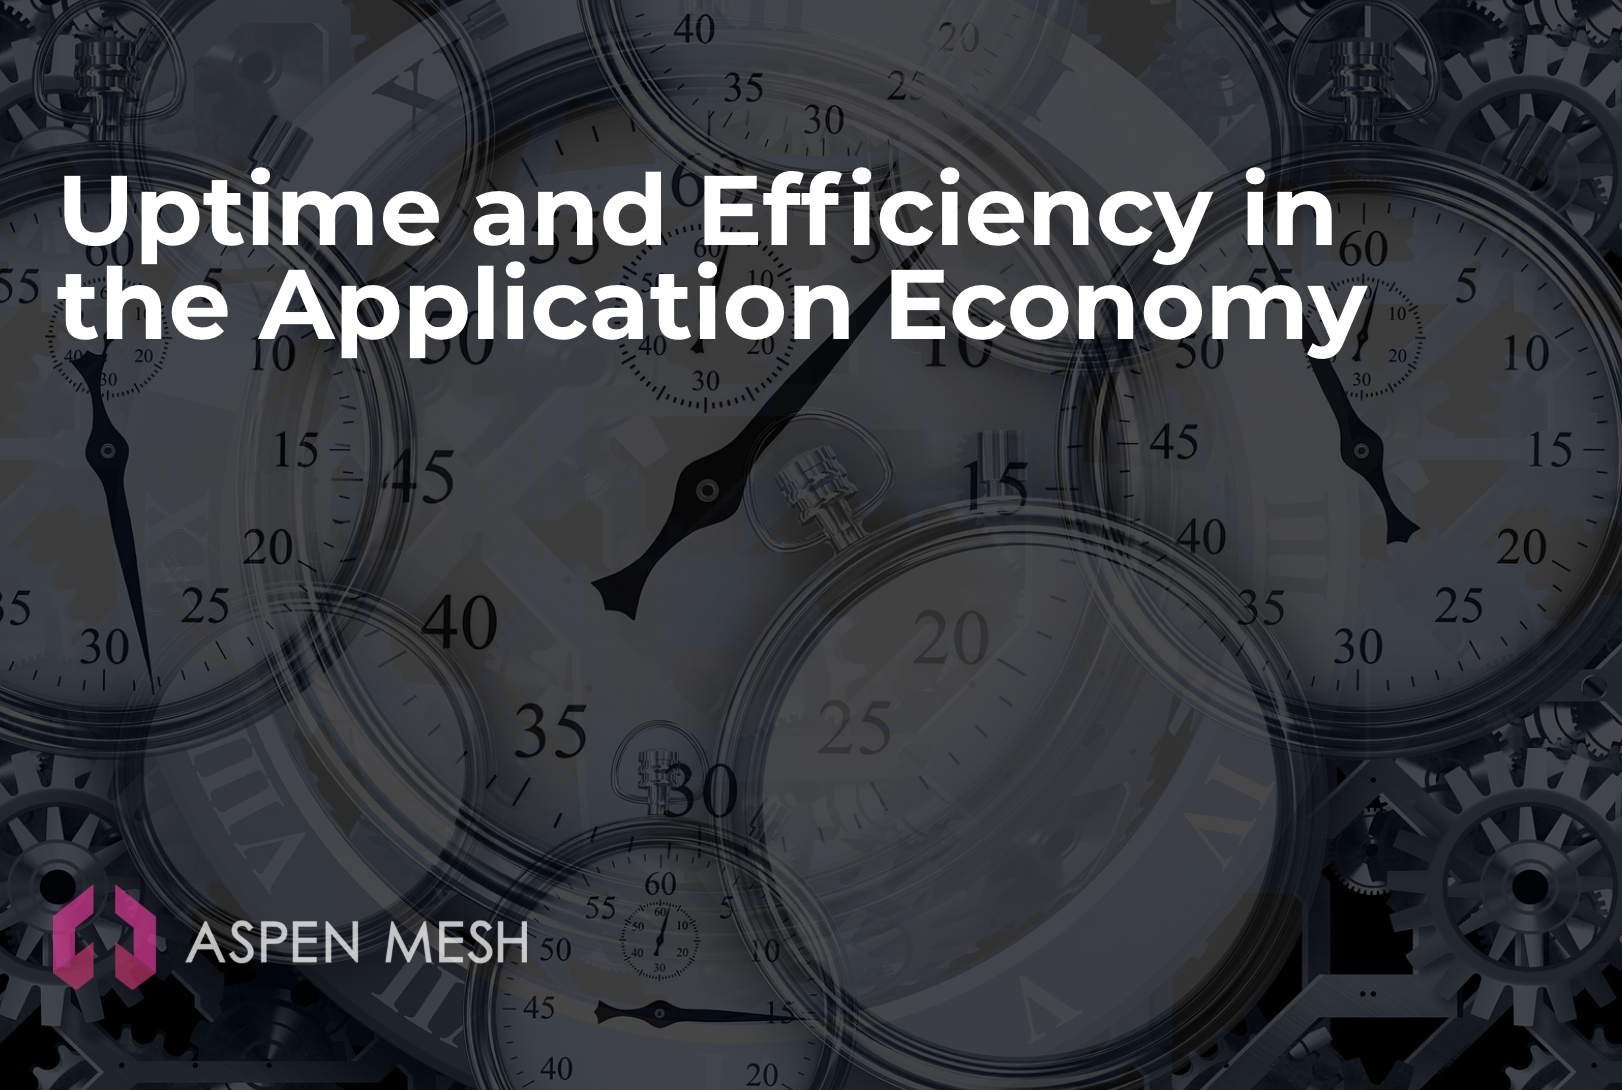 Uptime and Efficiency in the Application Economy